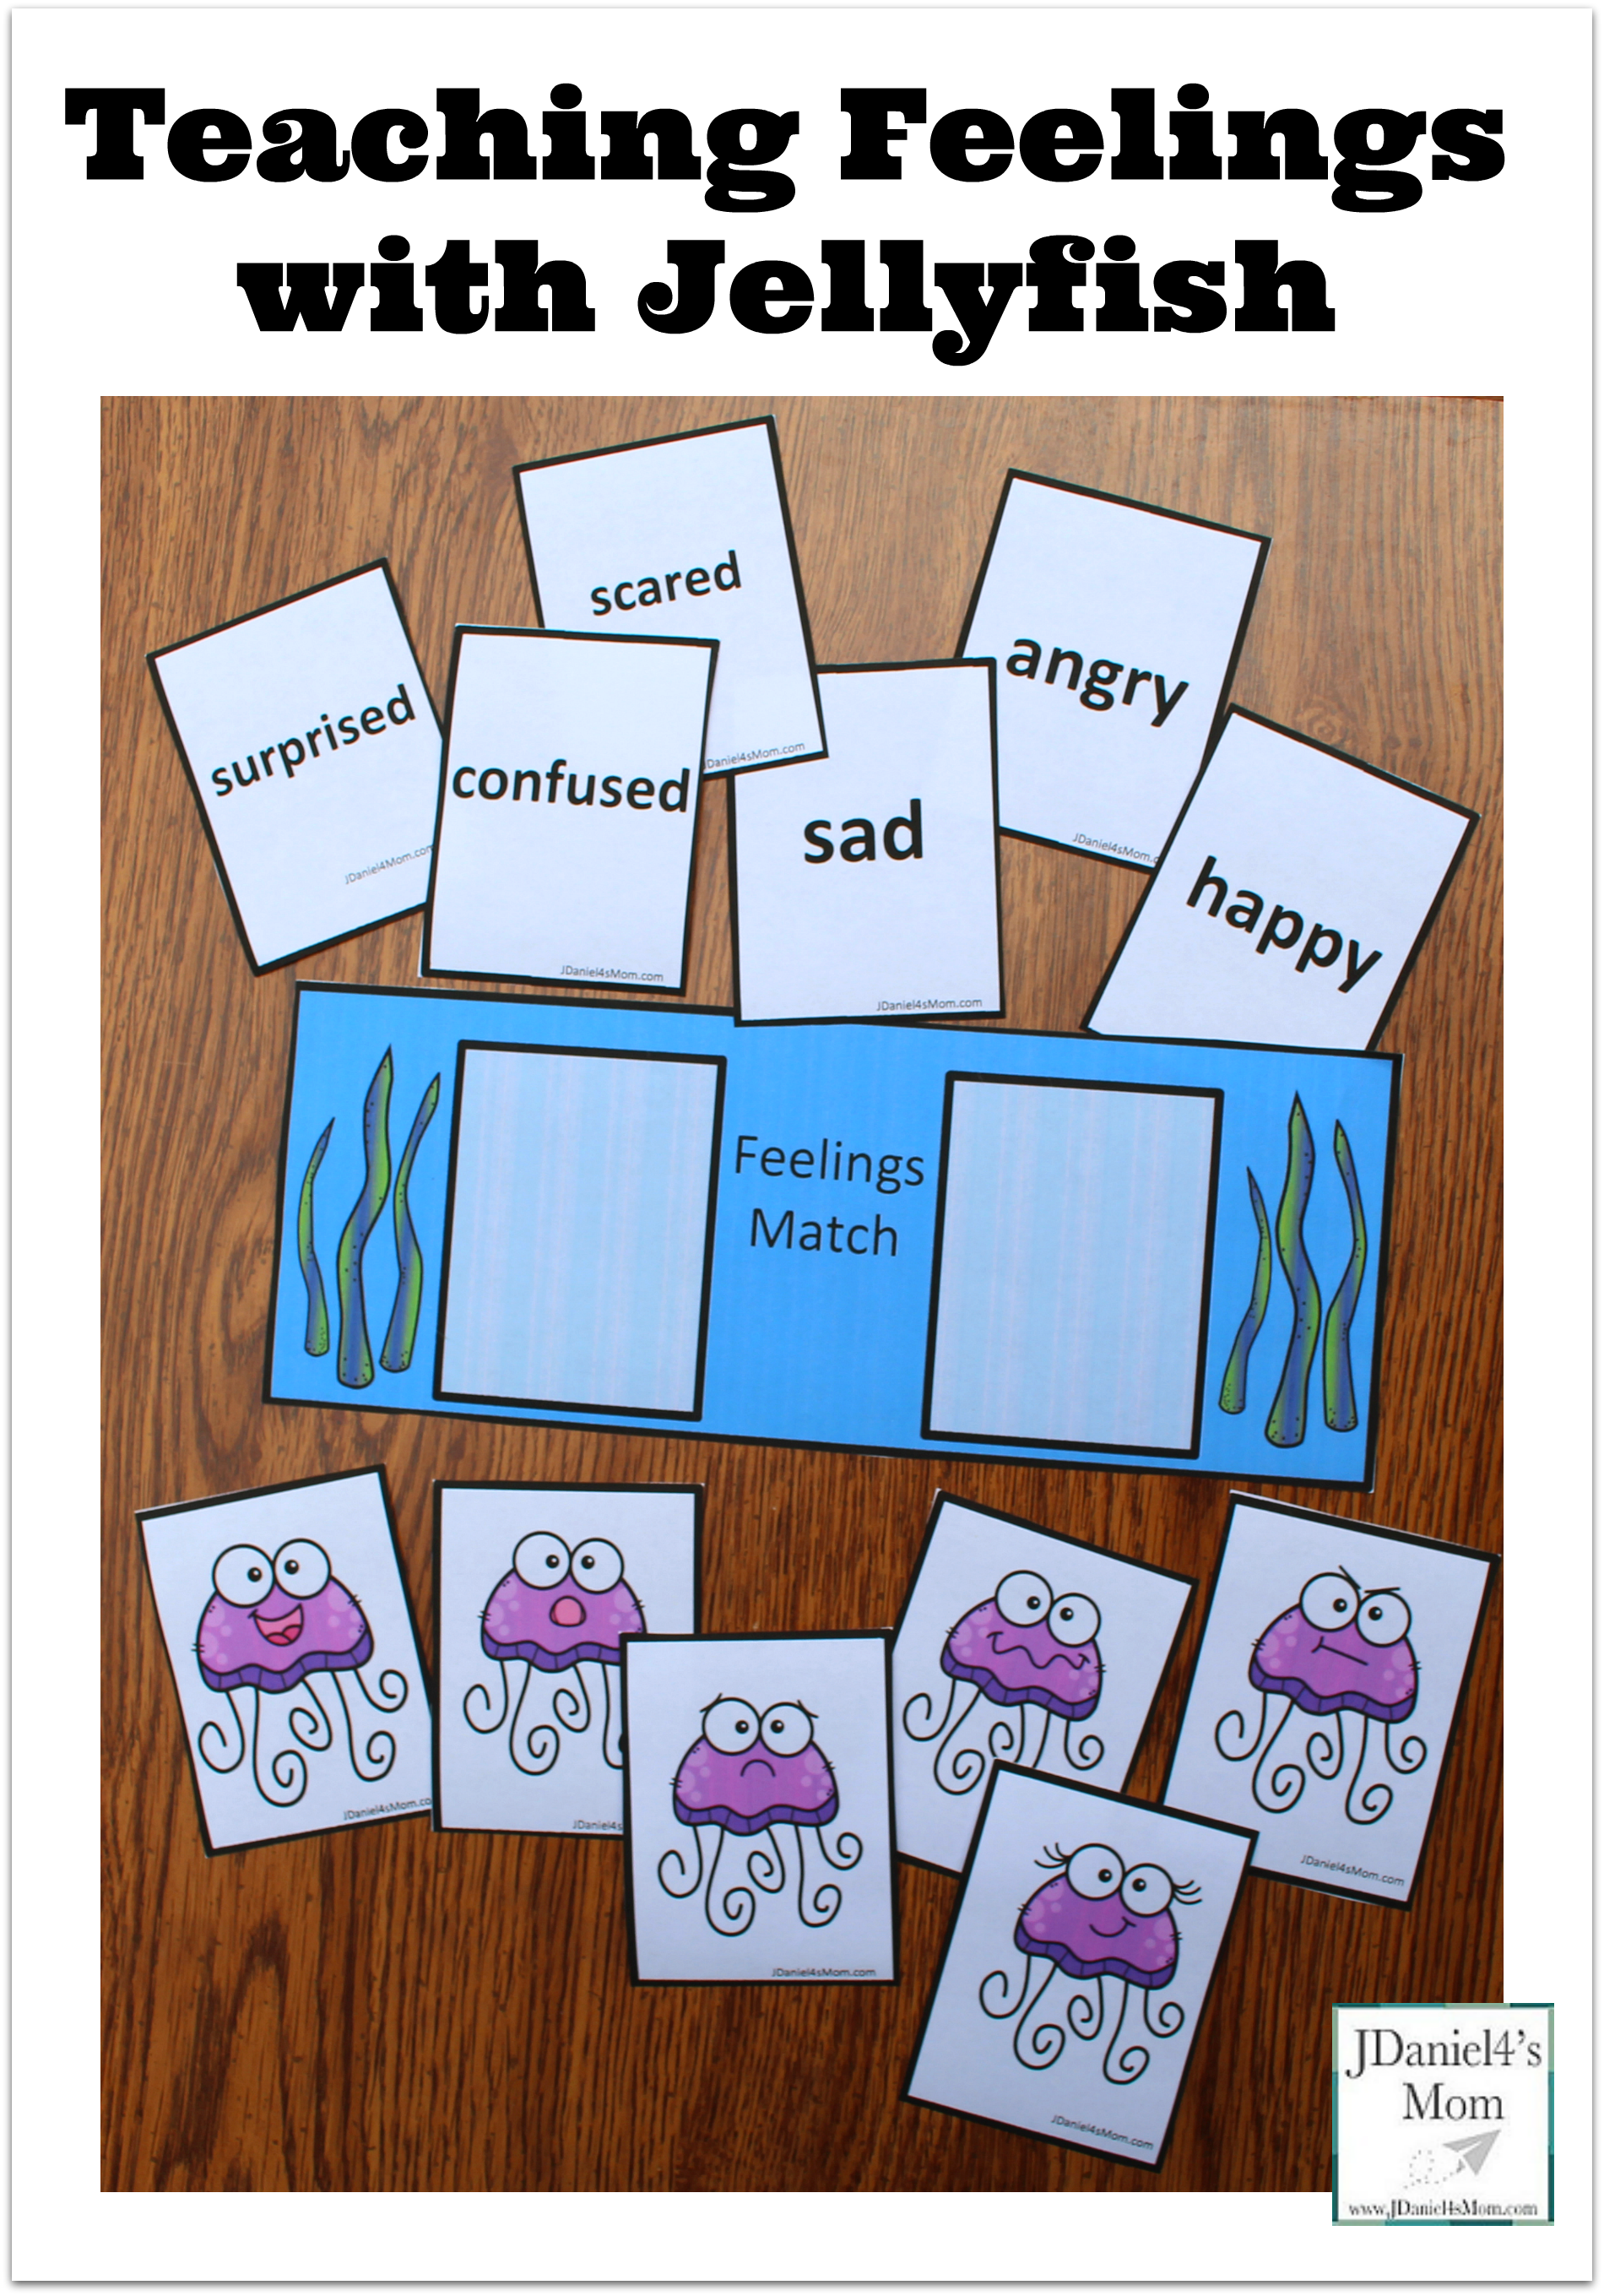 This set of teaching feelings with jellyfish printables includes feeling cards, jellyfish cards with various facial expressions and a work mat.